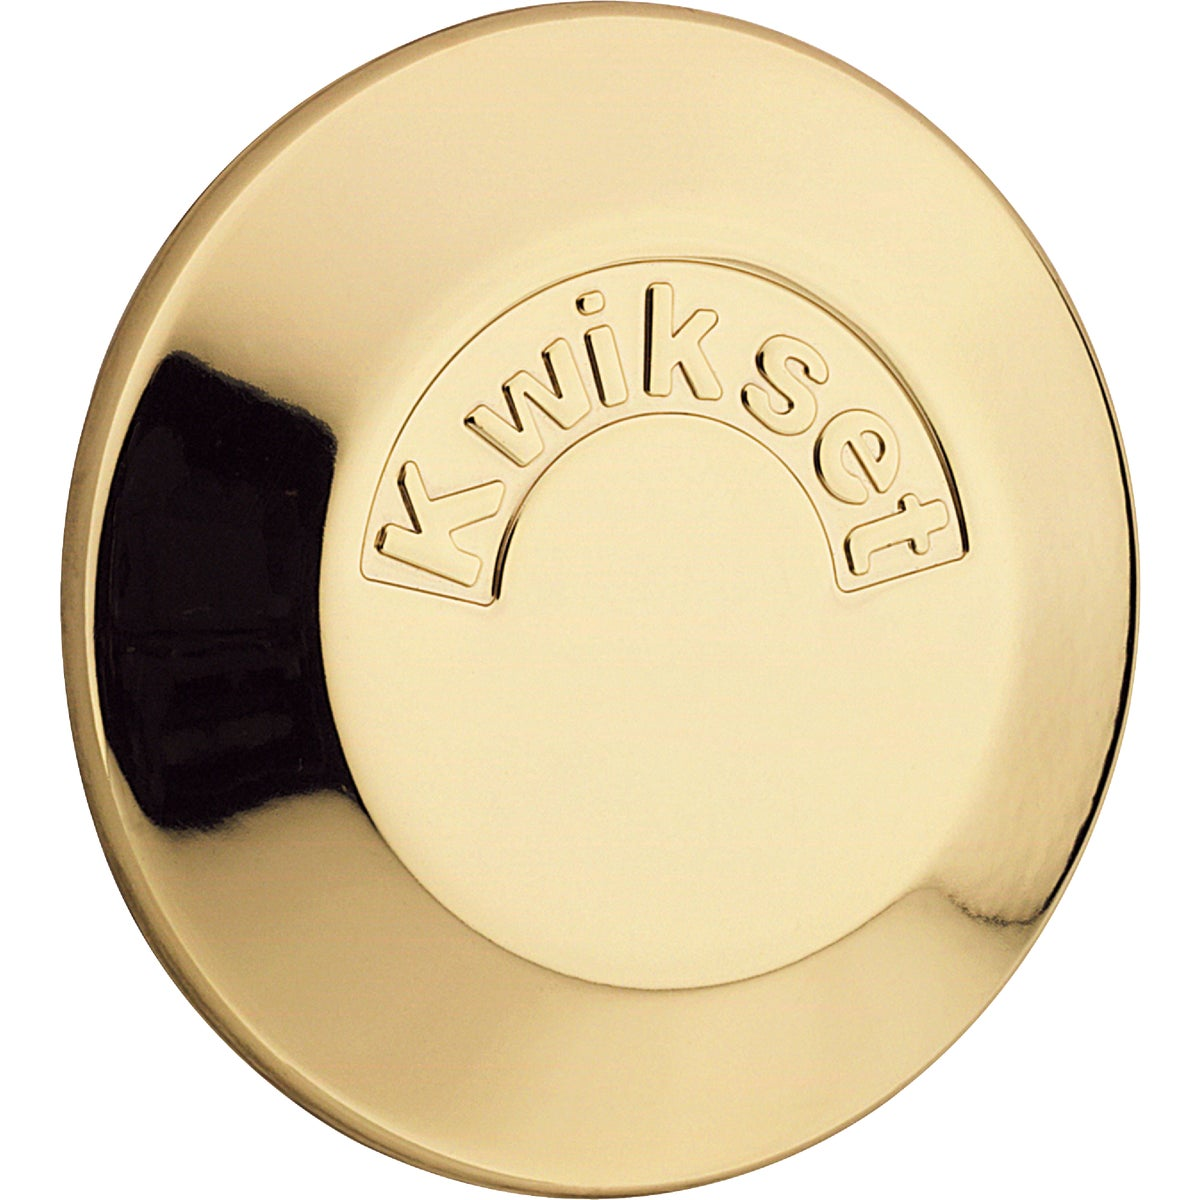 PB BX SNGL SIDE DEADBOLT